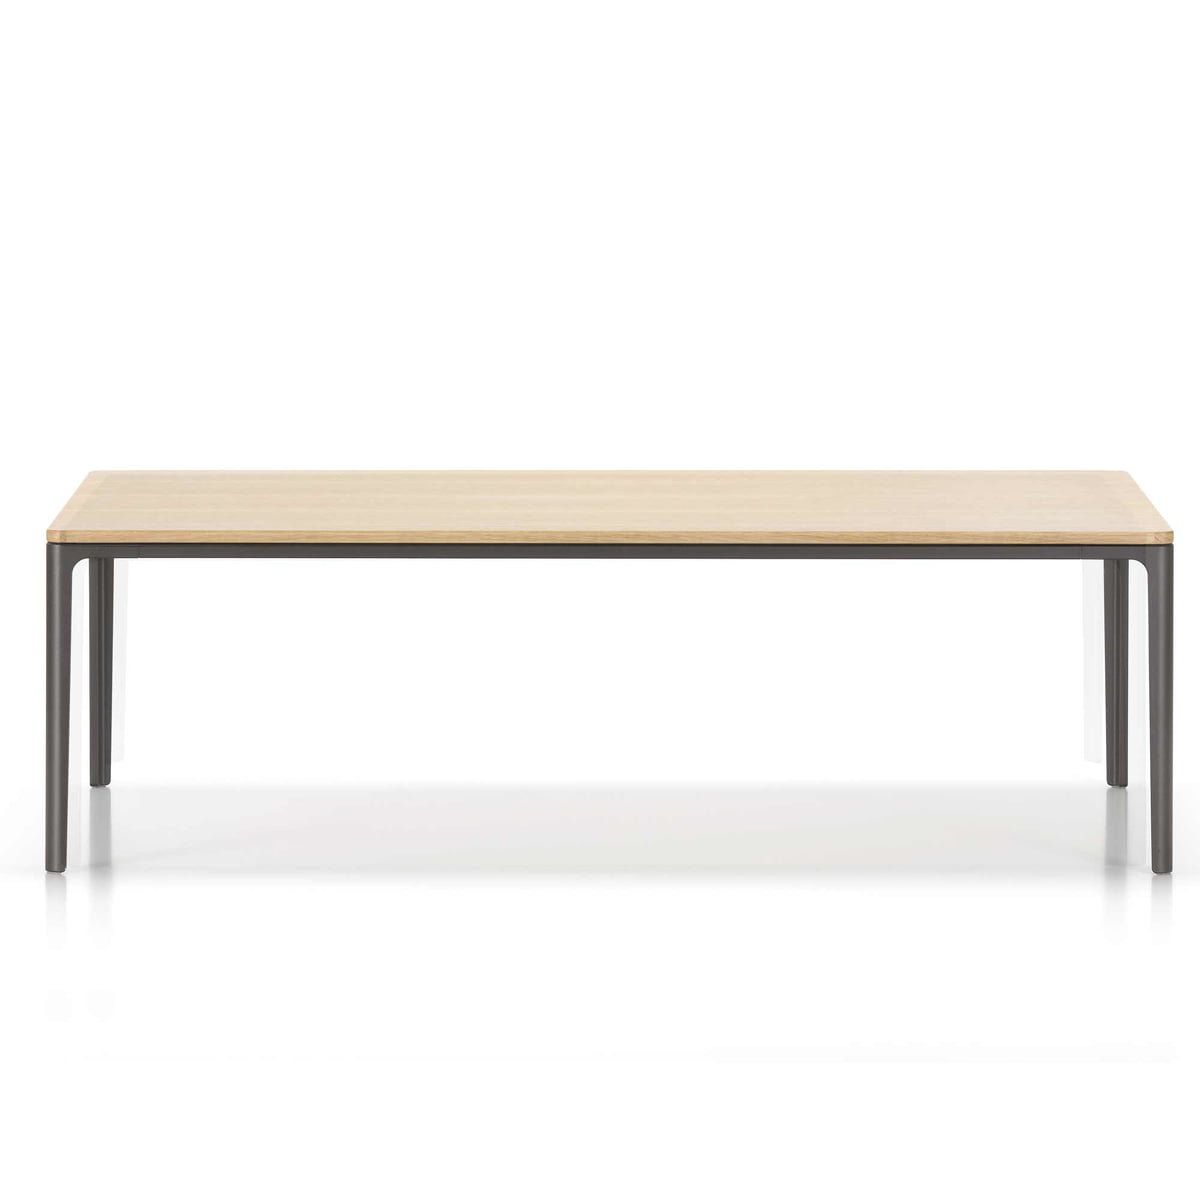 Vitra Plate Table Couchtisch 120 Cm Eiche Natur Chocolate